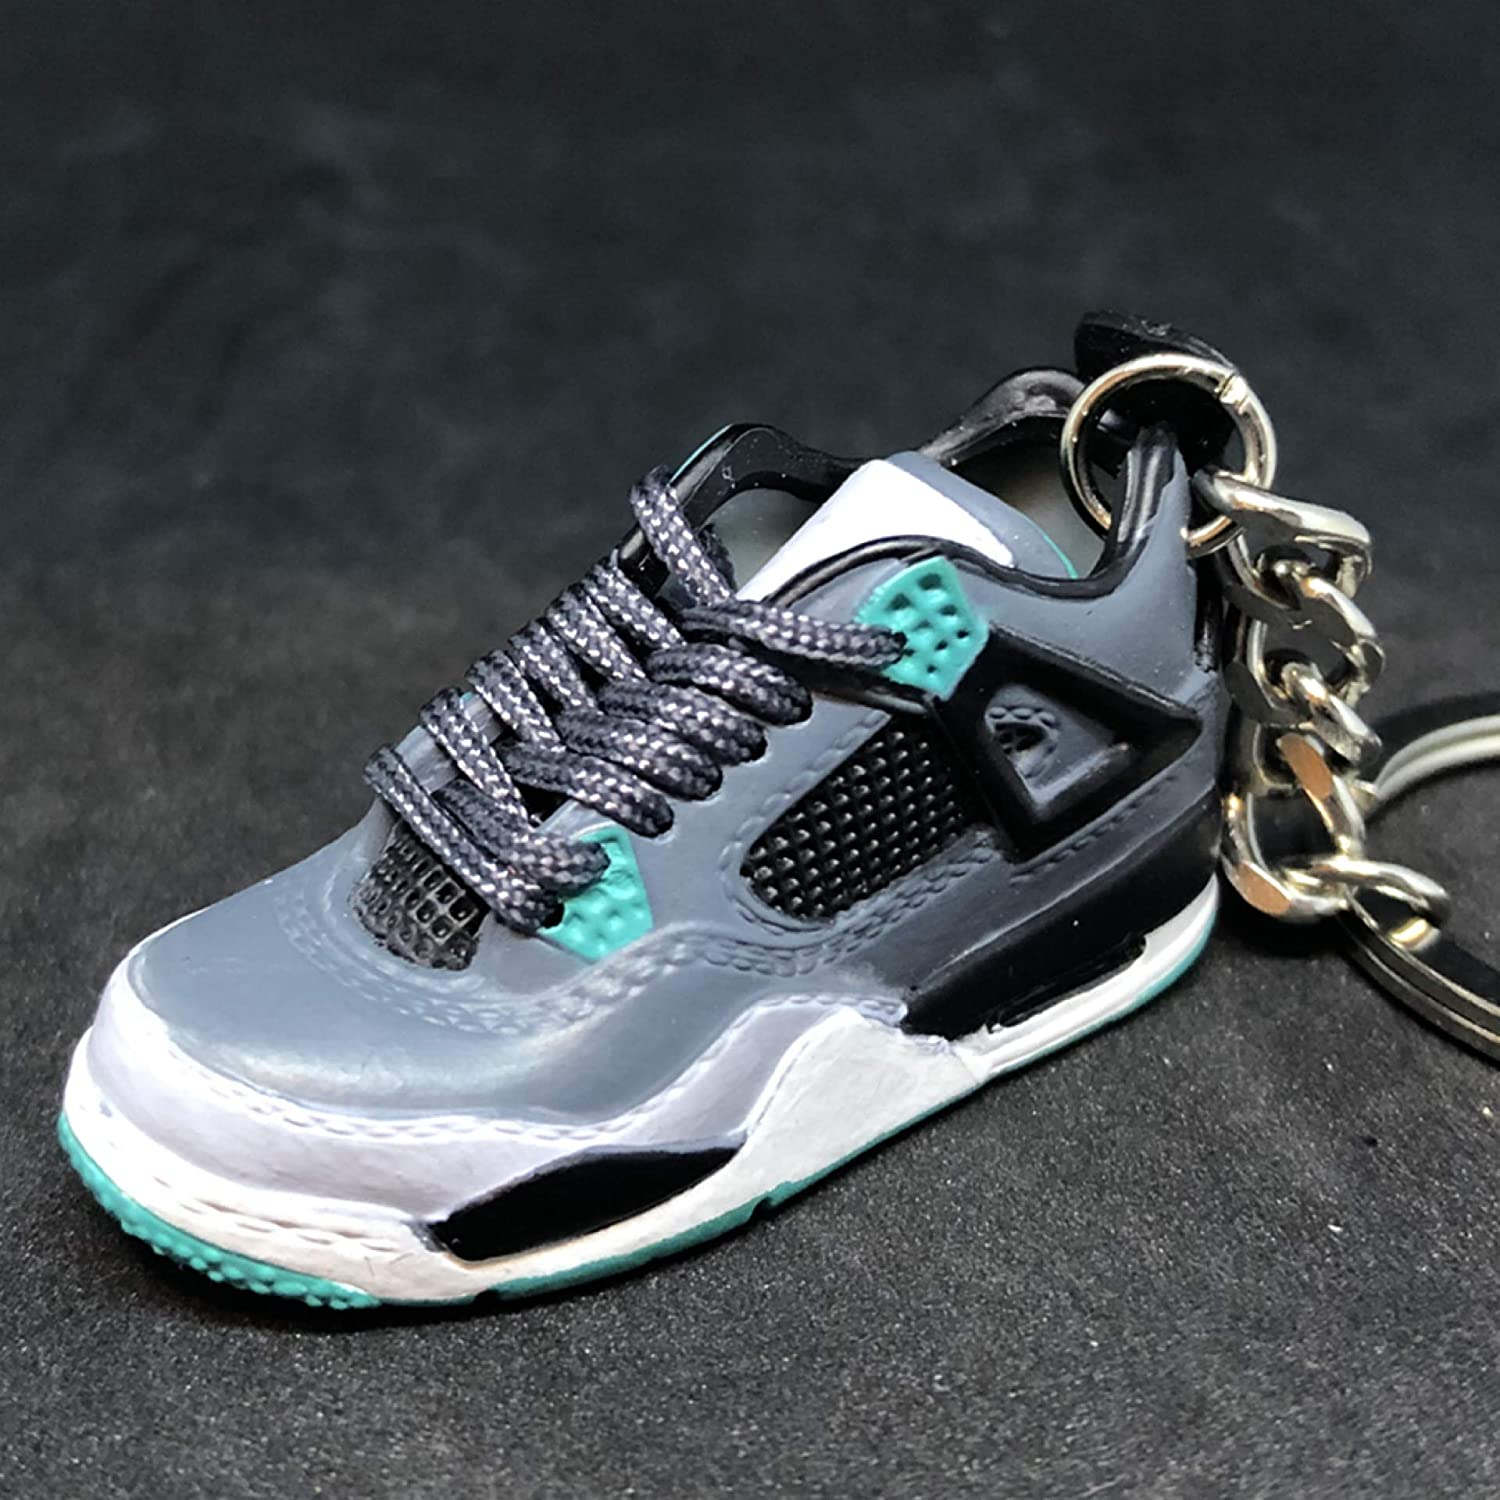 purchase cheap 12931 fe5f8 Amazon.com : Air Jordan IV 4 Retro Green Glow OG Sneakers ...